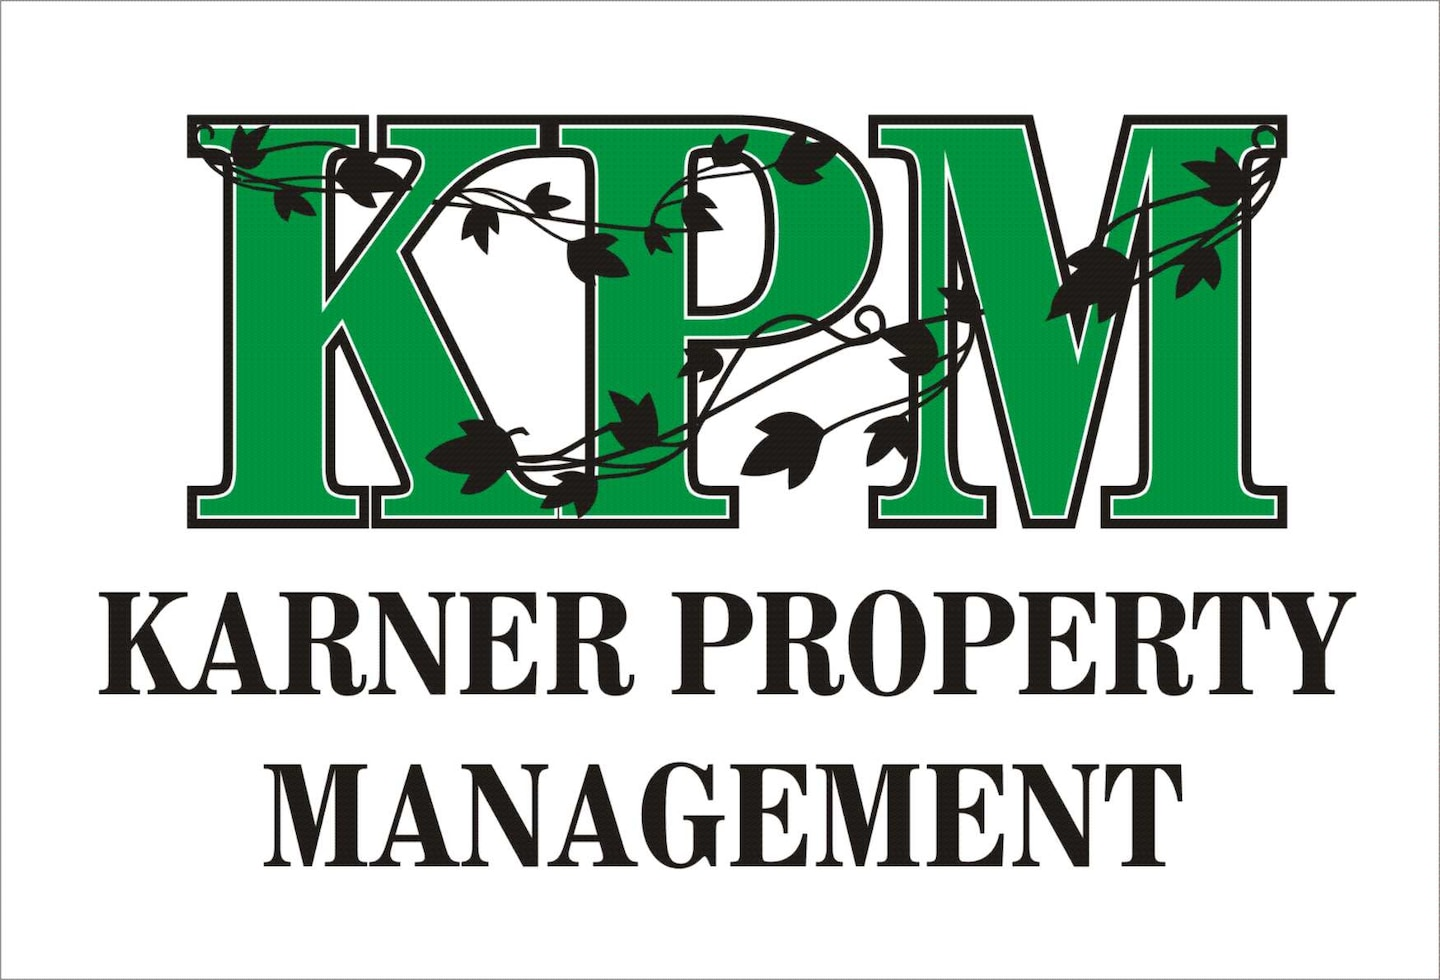 Karner Property Management LLC